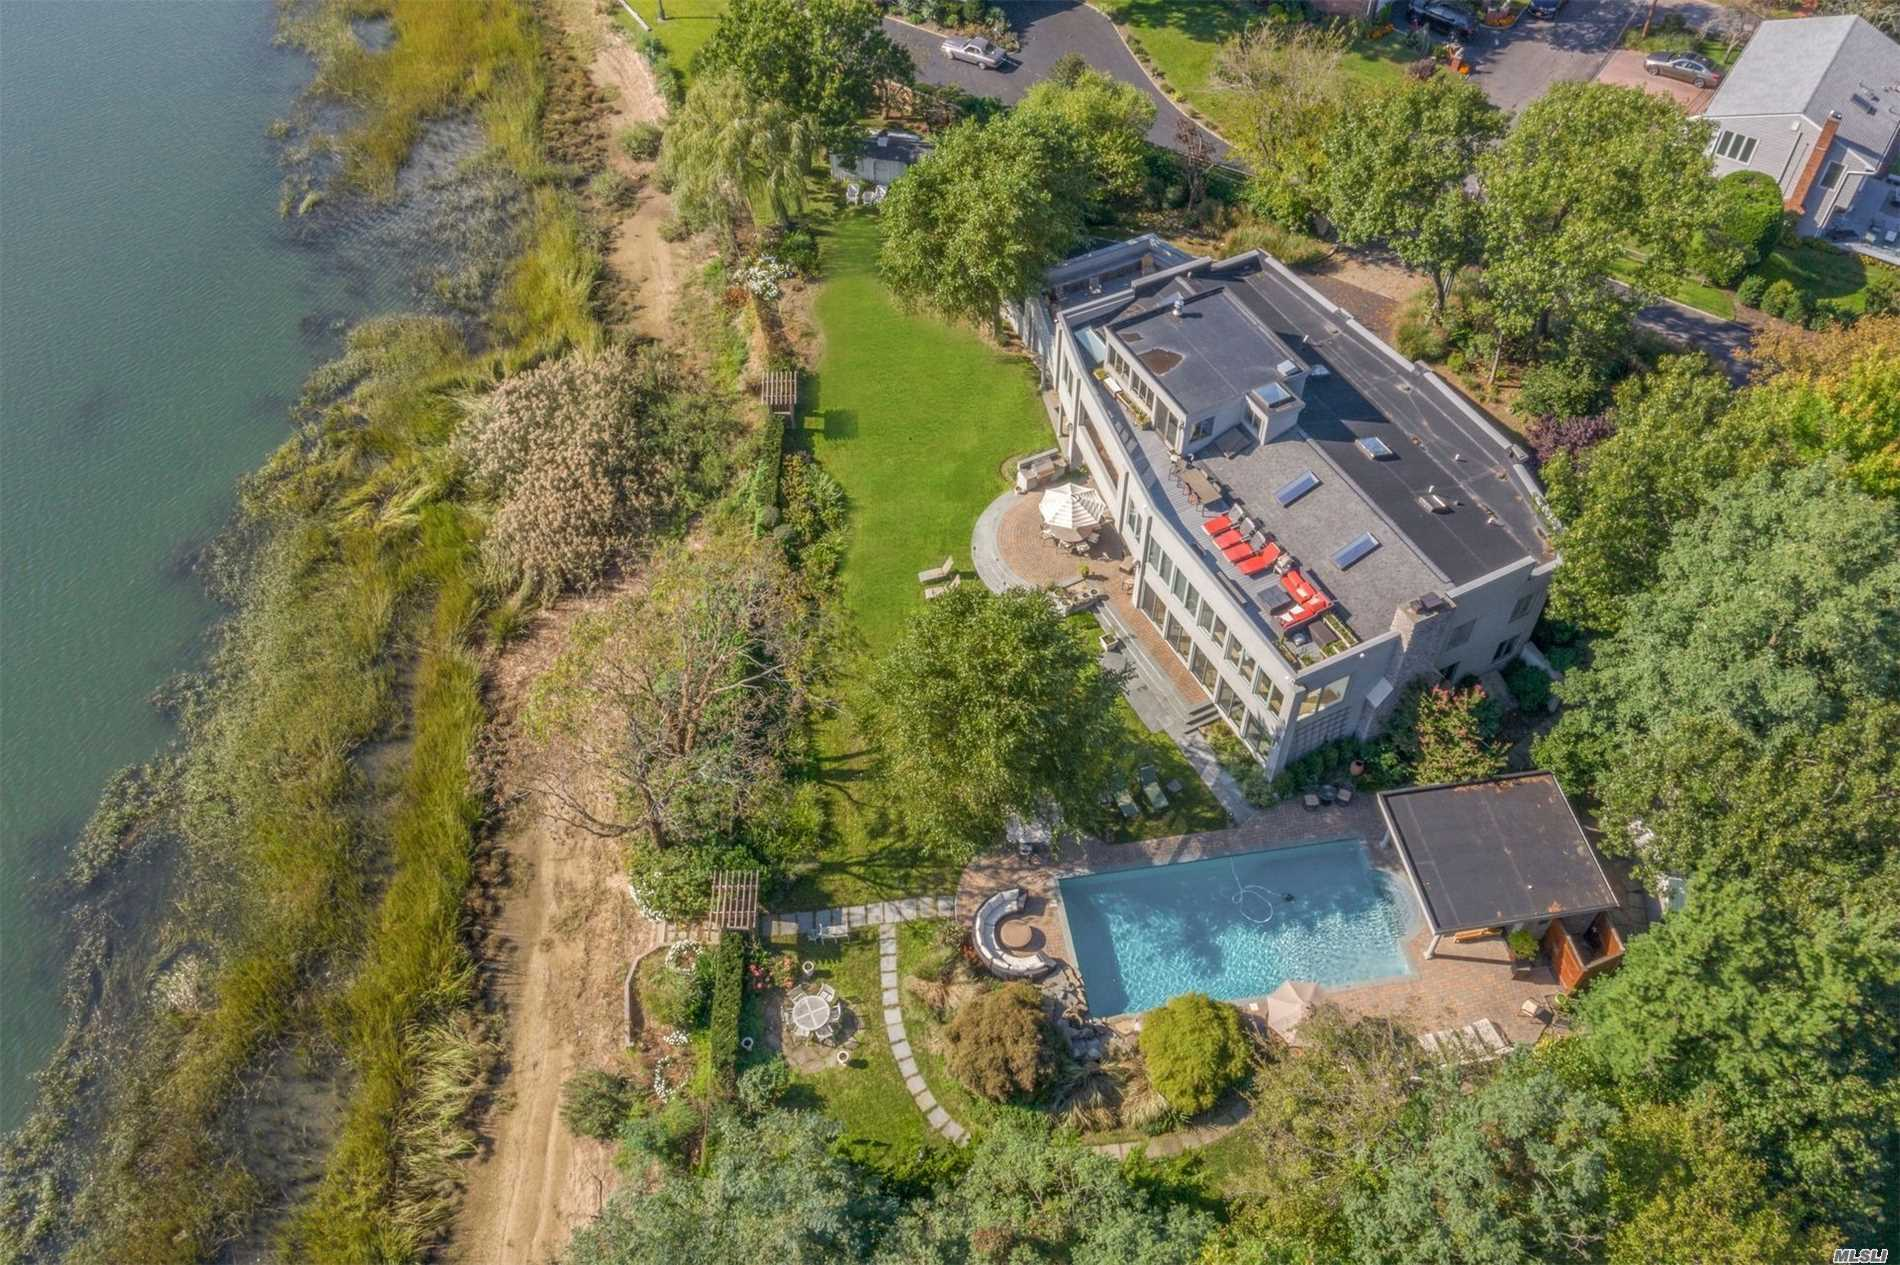 Impressive waterfront home with 290' on Mill Neck Bay. An entertainer's dream, this 5, 500 SF approx. Contemporary boasts panoramic water views from most rooms, an open sun-filled layout, soaring ceilings, indoor spa, multiple outdoor sun decks, and many high end custom details. Gorgeous heated pool with pool house on a beautifully manicured acre. Serene and private location, yet close to all.